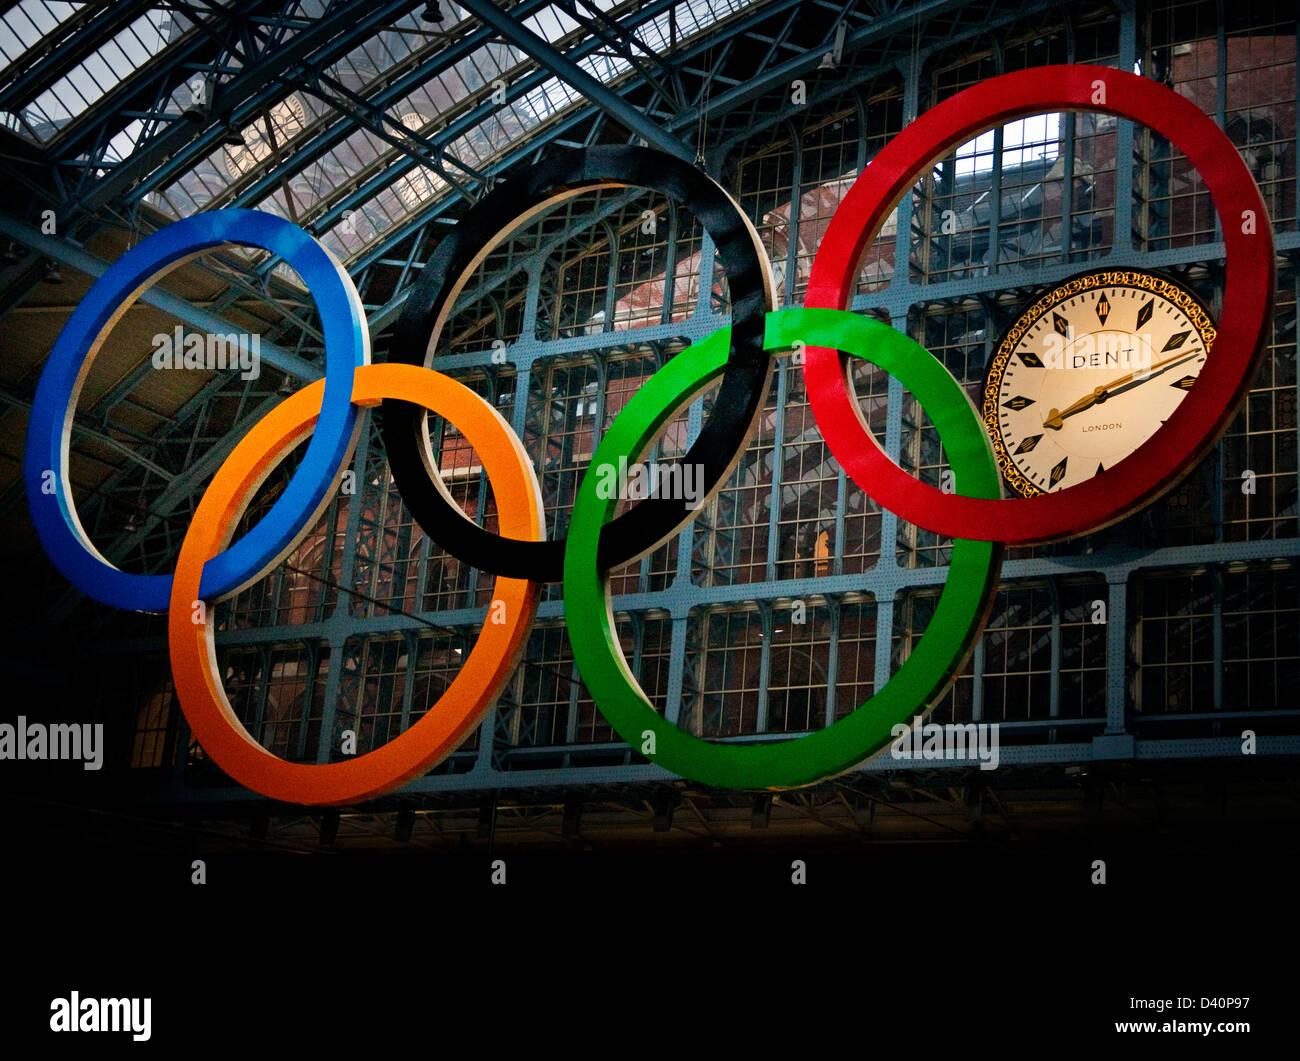 Olympic rings hanging at St Pancras station showing clock at 20:12 pm - Stock Image